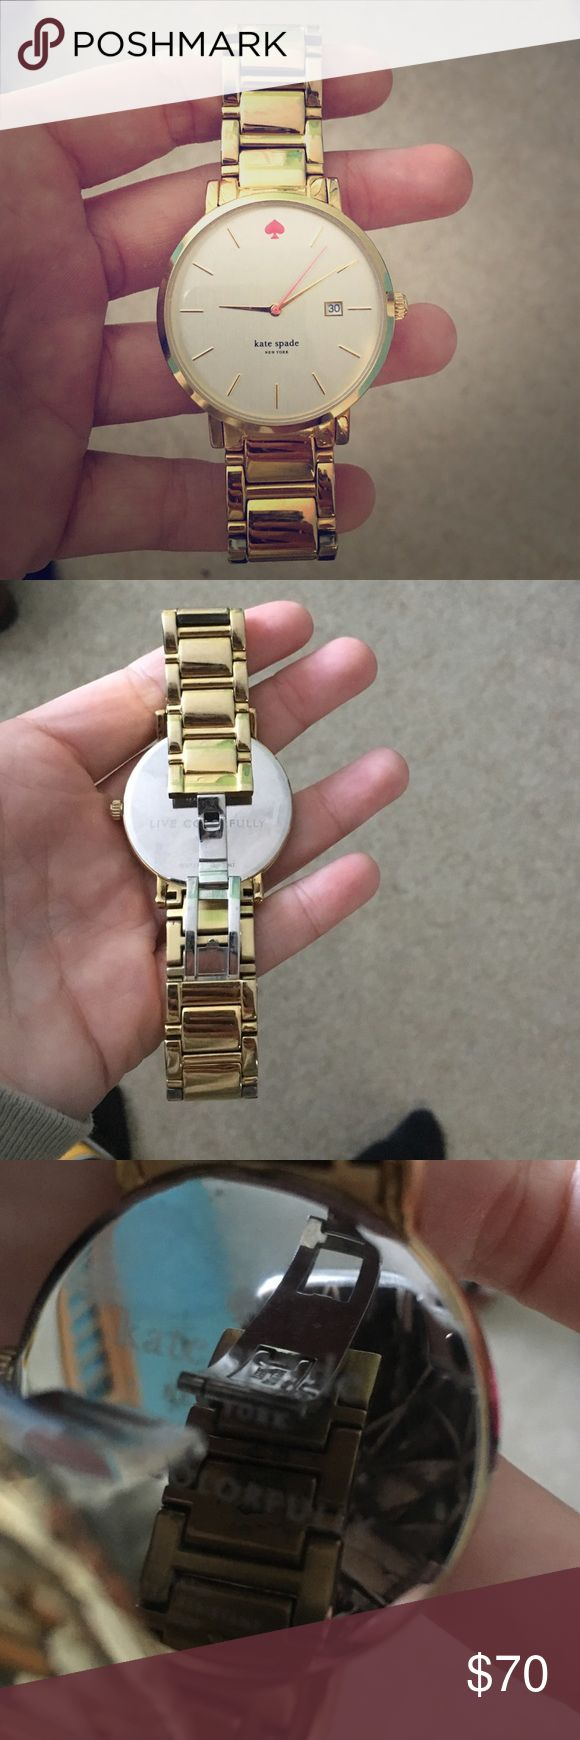 Kate Spade gold watch The watch stopped working, may need a new battery. Gold in color with pink spade. I have a small-med sized wrist. kate spade Accessories Watches